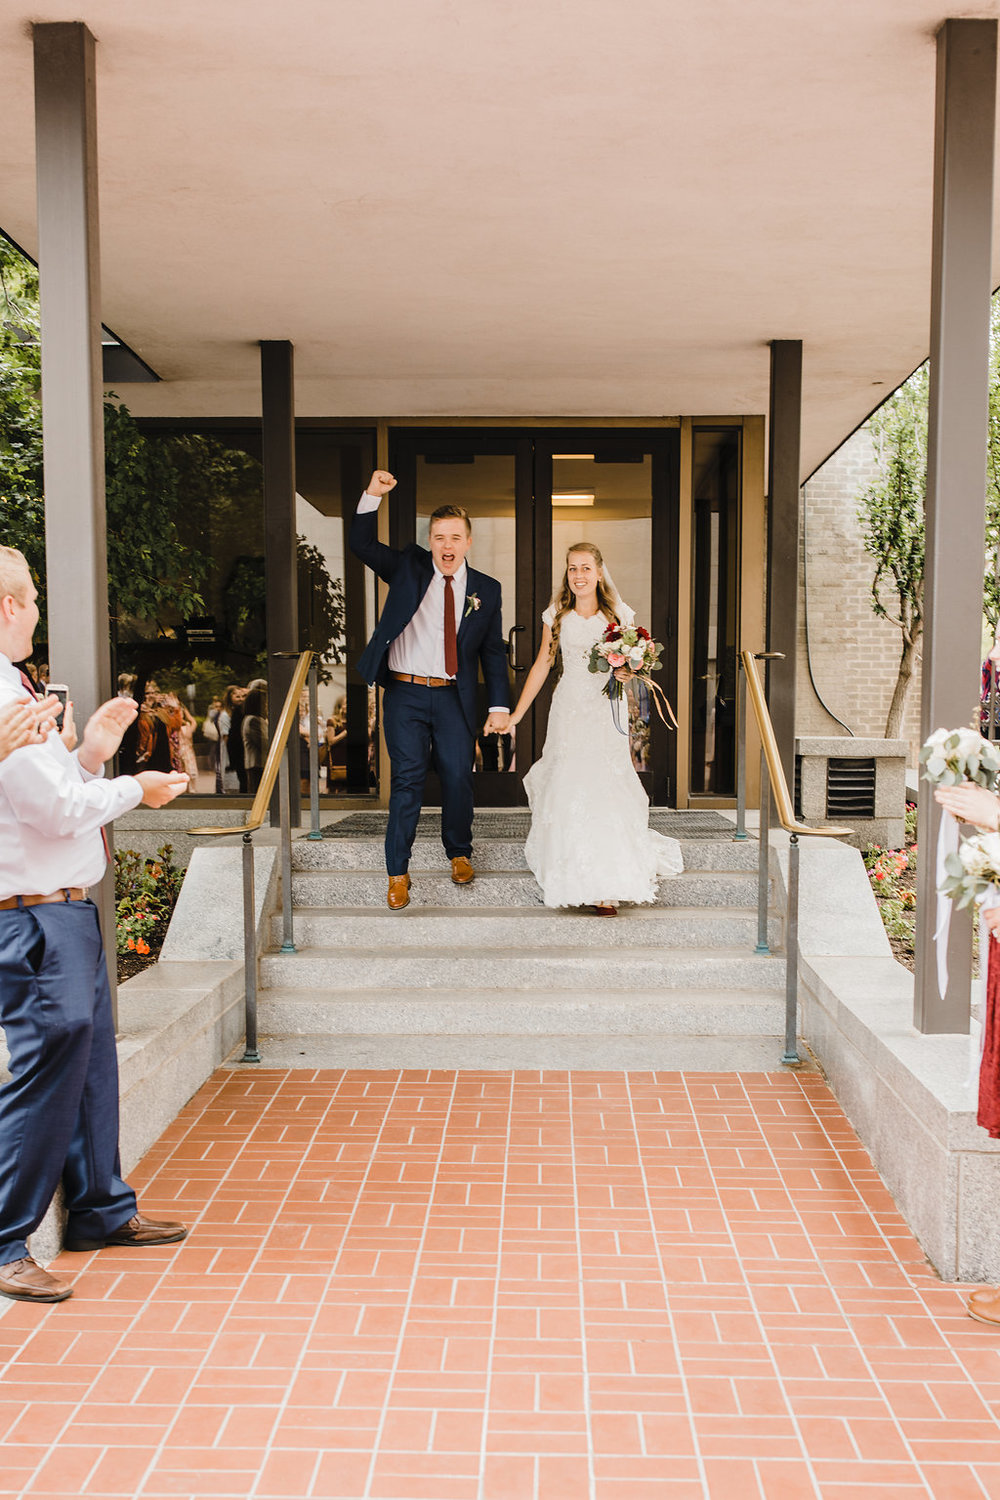 lds temple exit wedding photographer in salt lake city mormon wedding temple professional photography